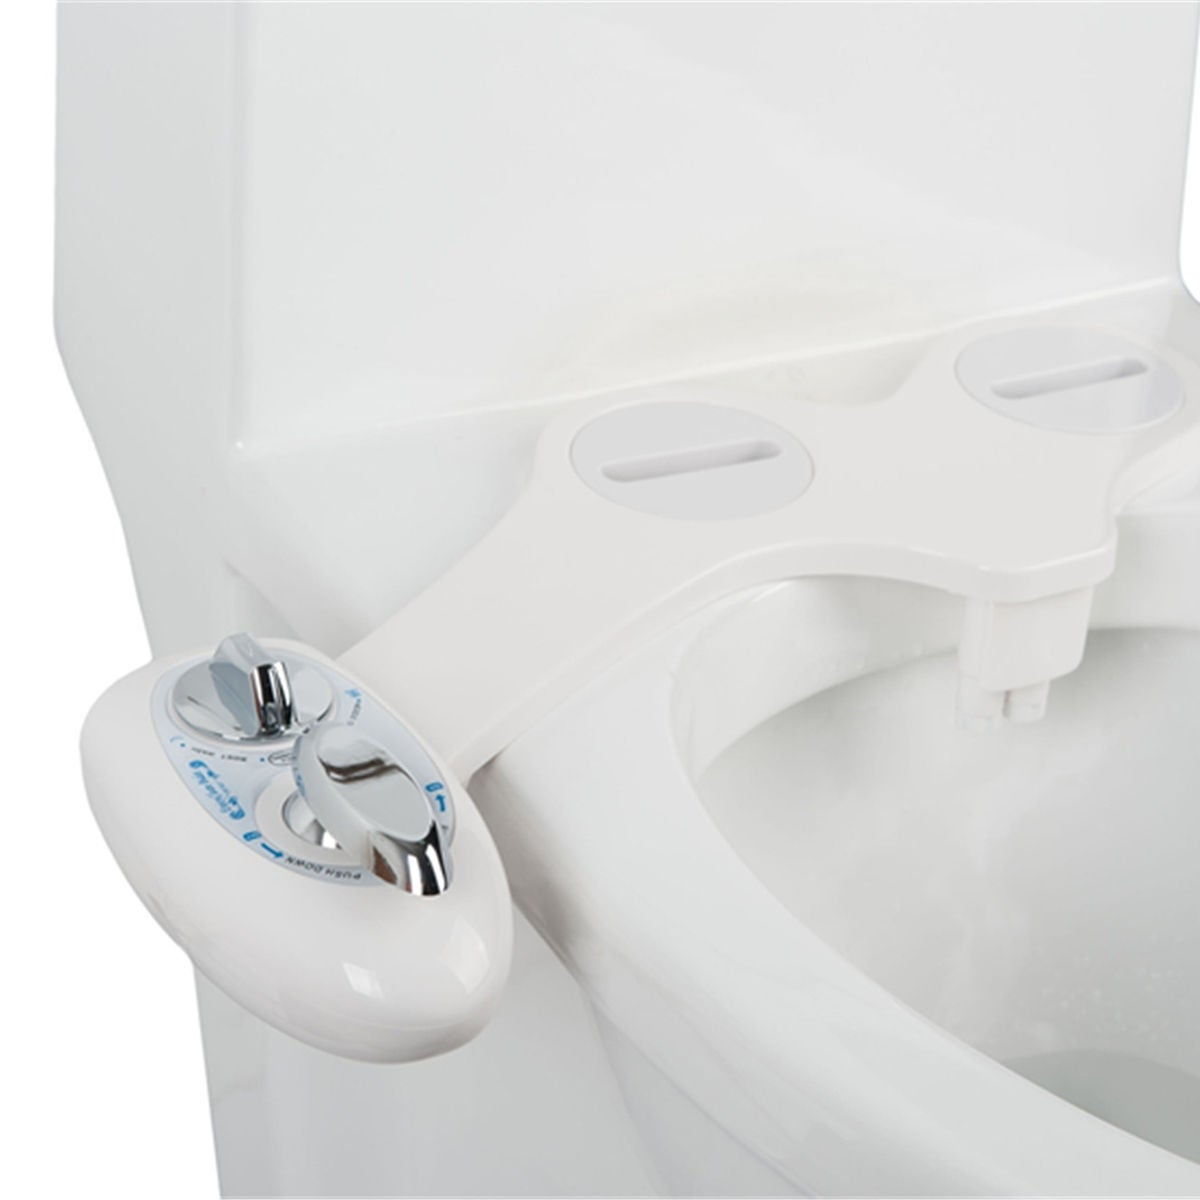 Shop Costway Fresh Water Spray Manual Non Electric Bidet Toilet Seat Attachment Flow Adjust Overstock 18004755